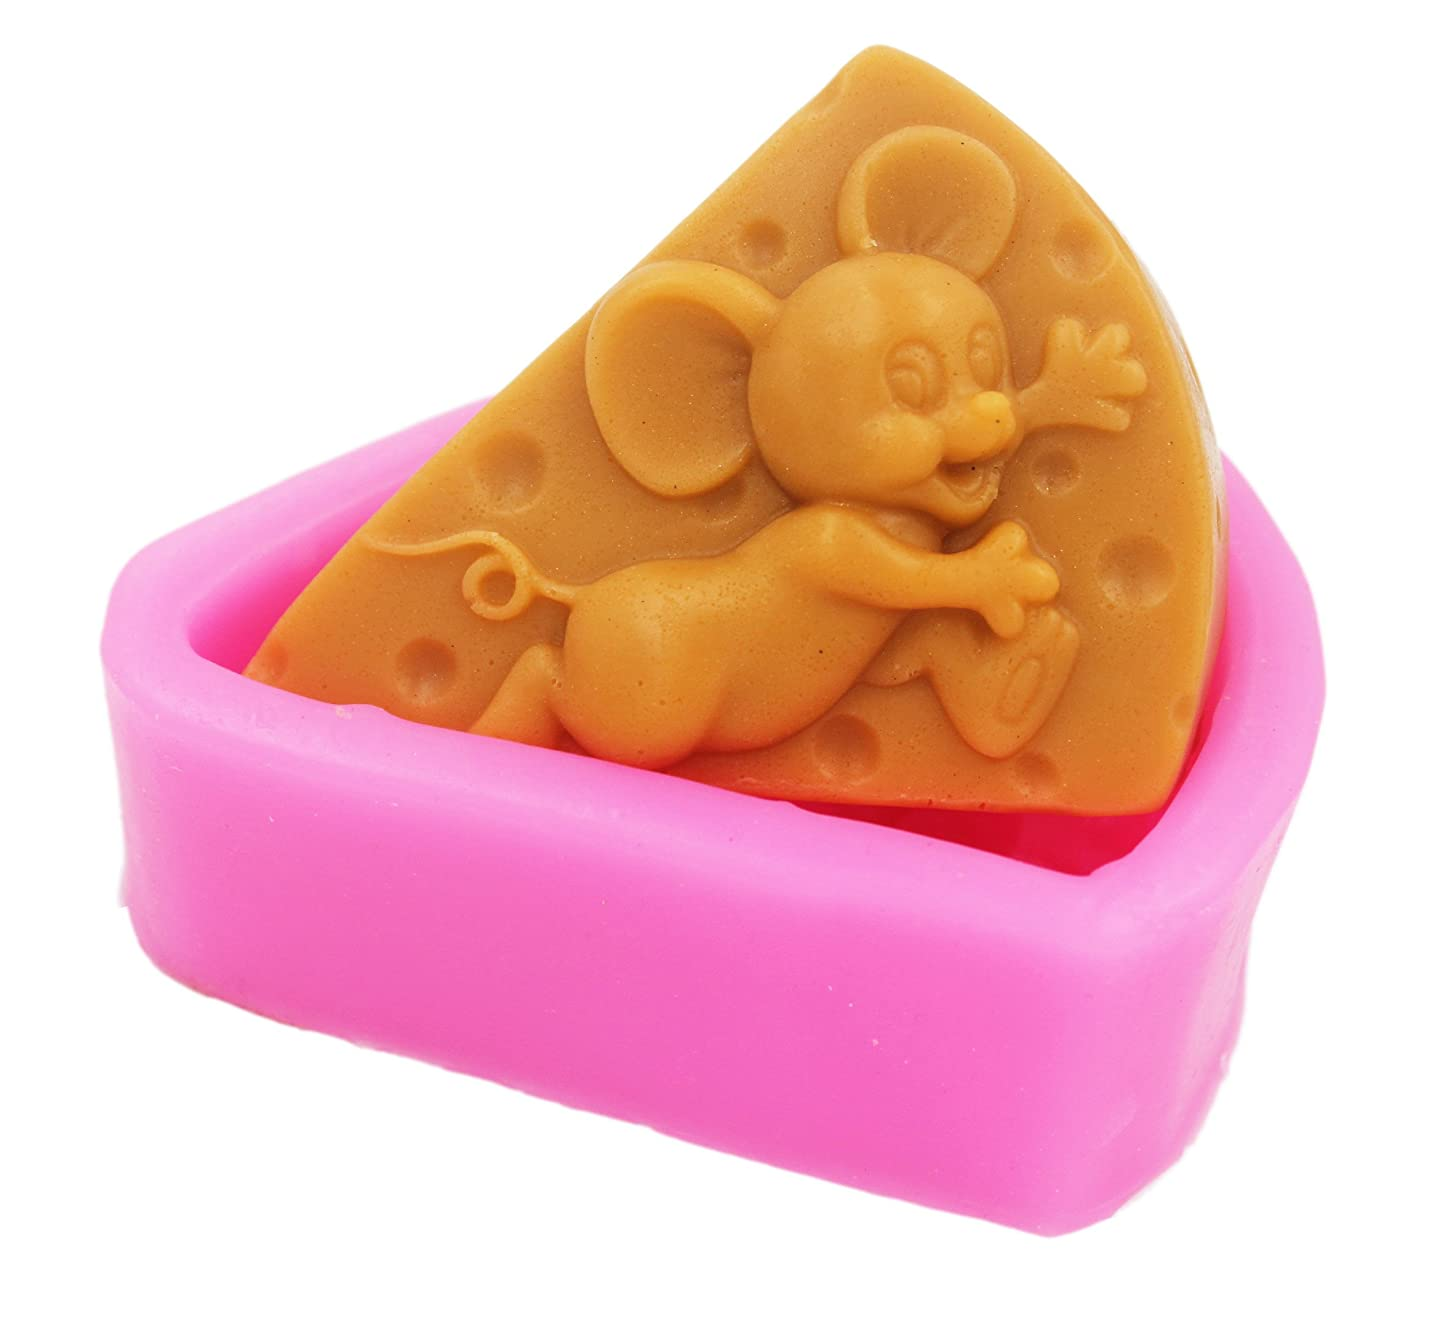 Longzang Mouse Cake Mould S404 Art Silicone Soap Craft DIY Handmade Candle Molds